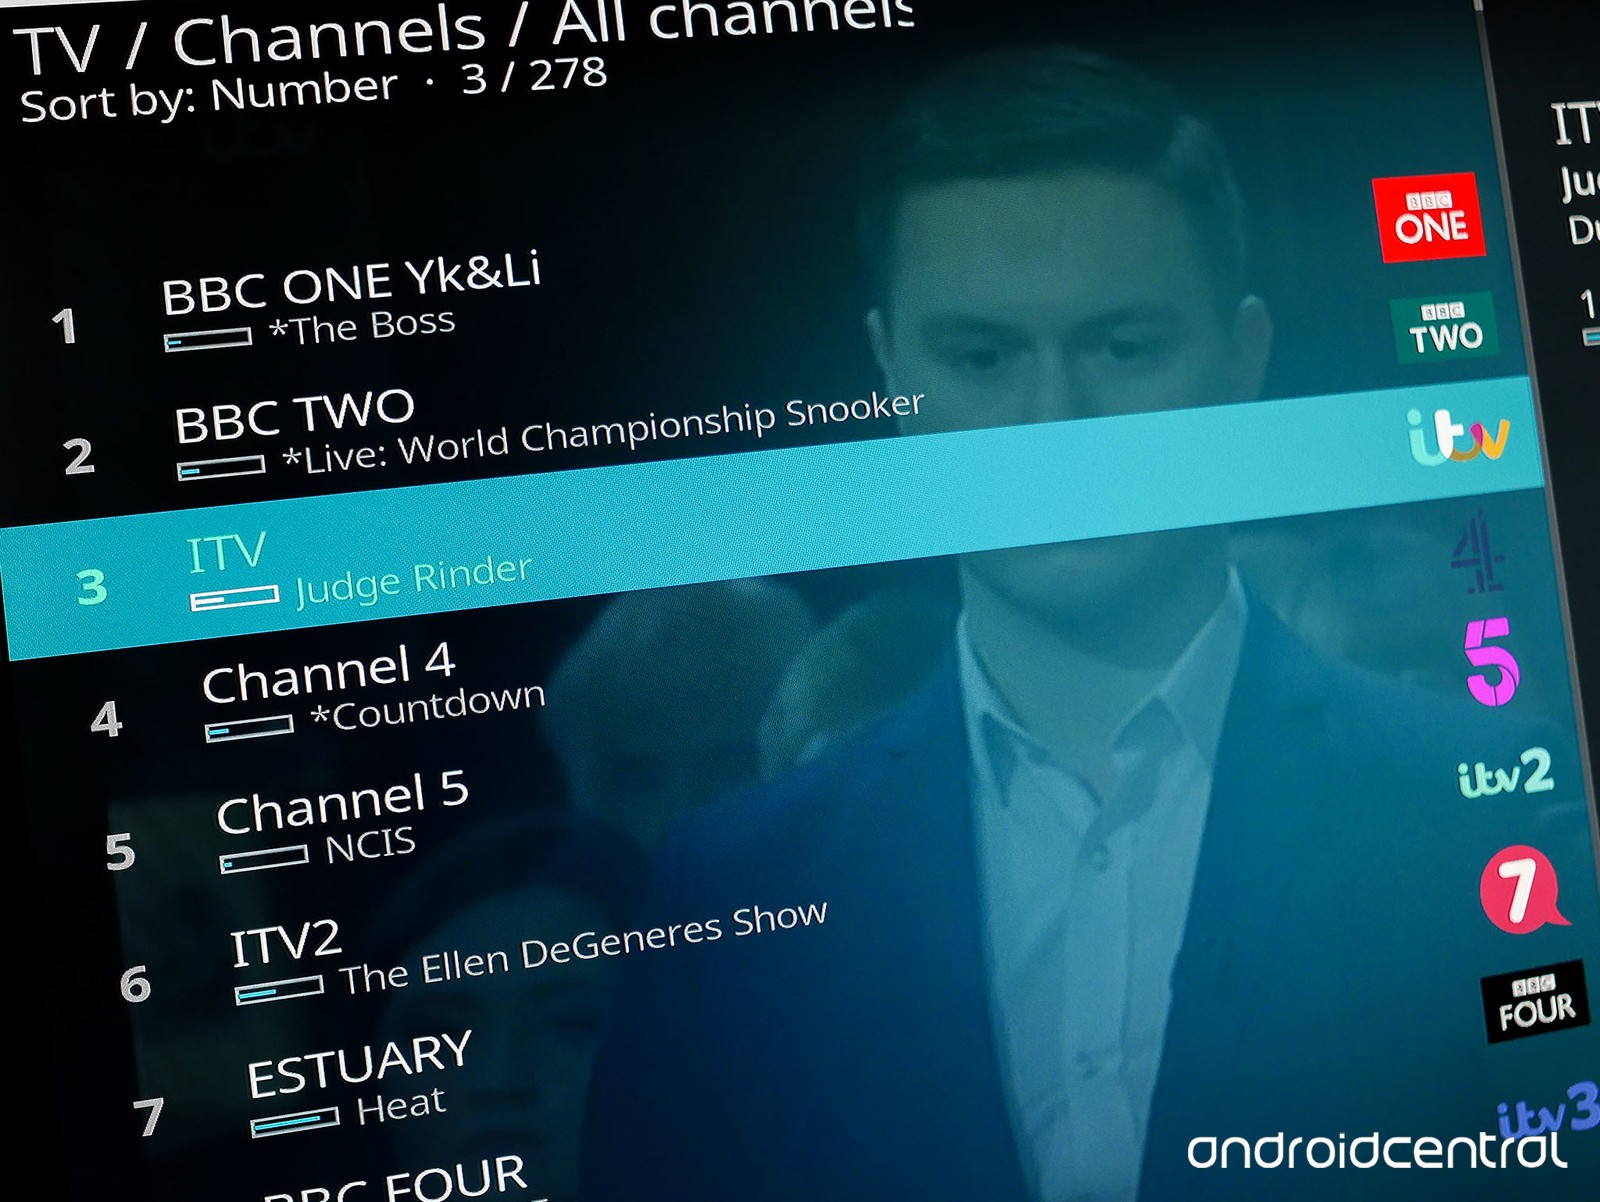 UKTVNOW APK Download – Free Live TV Channel App – UkTVNow